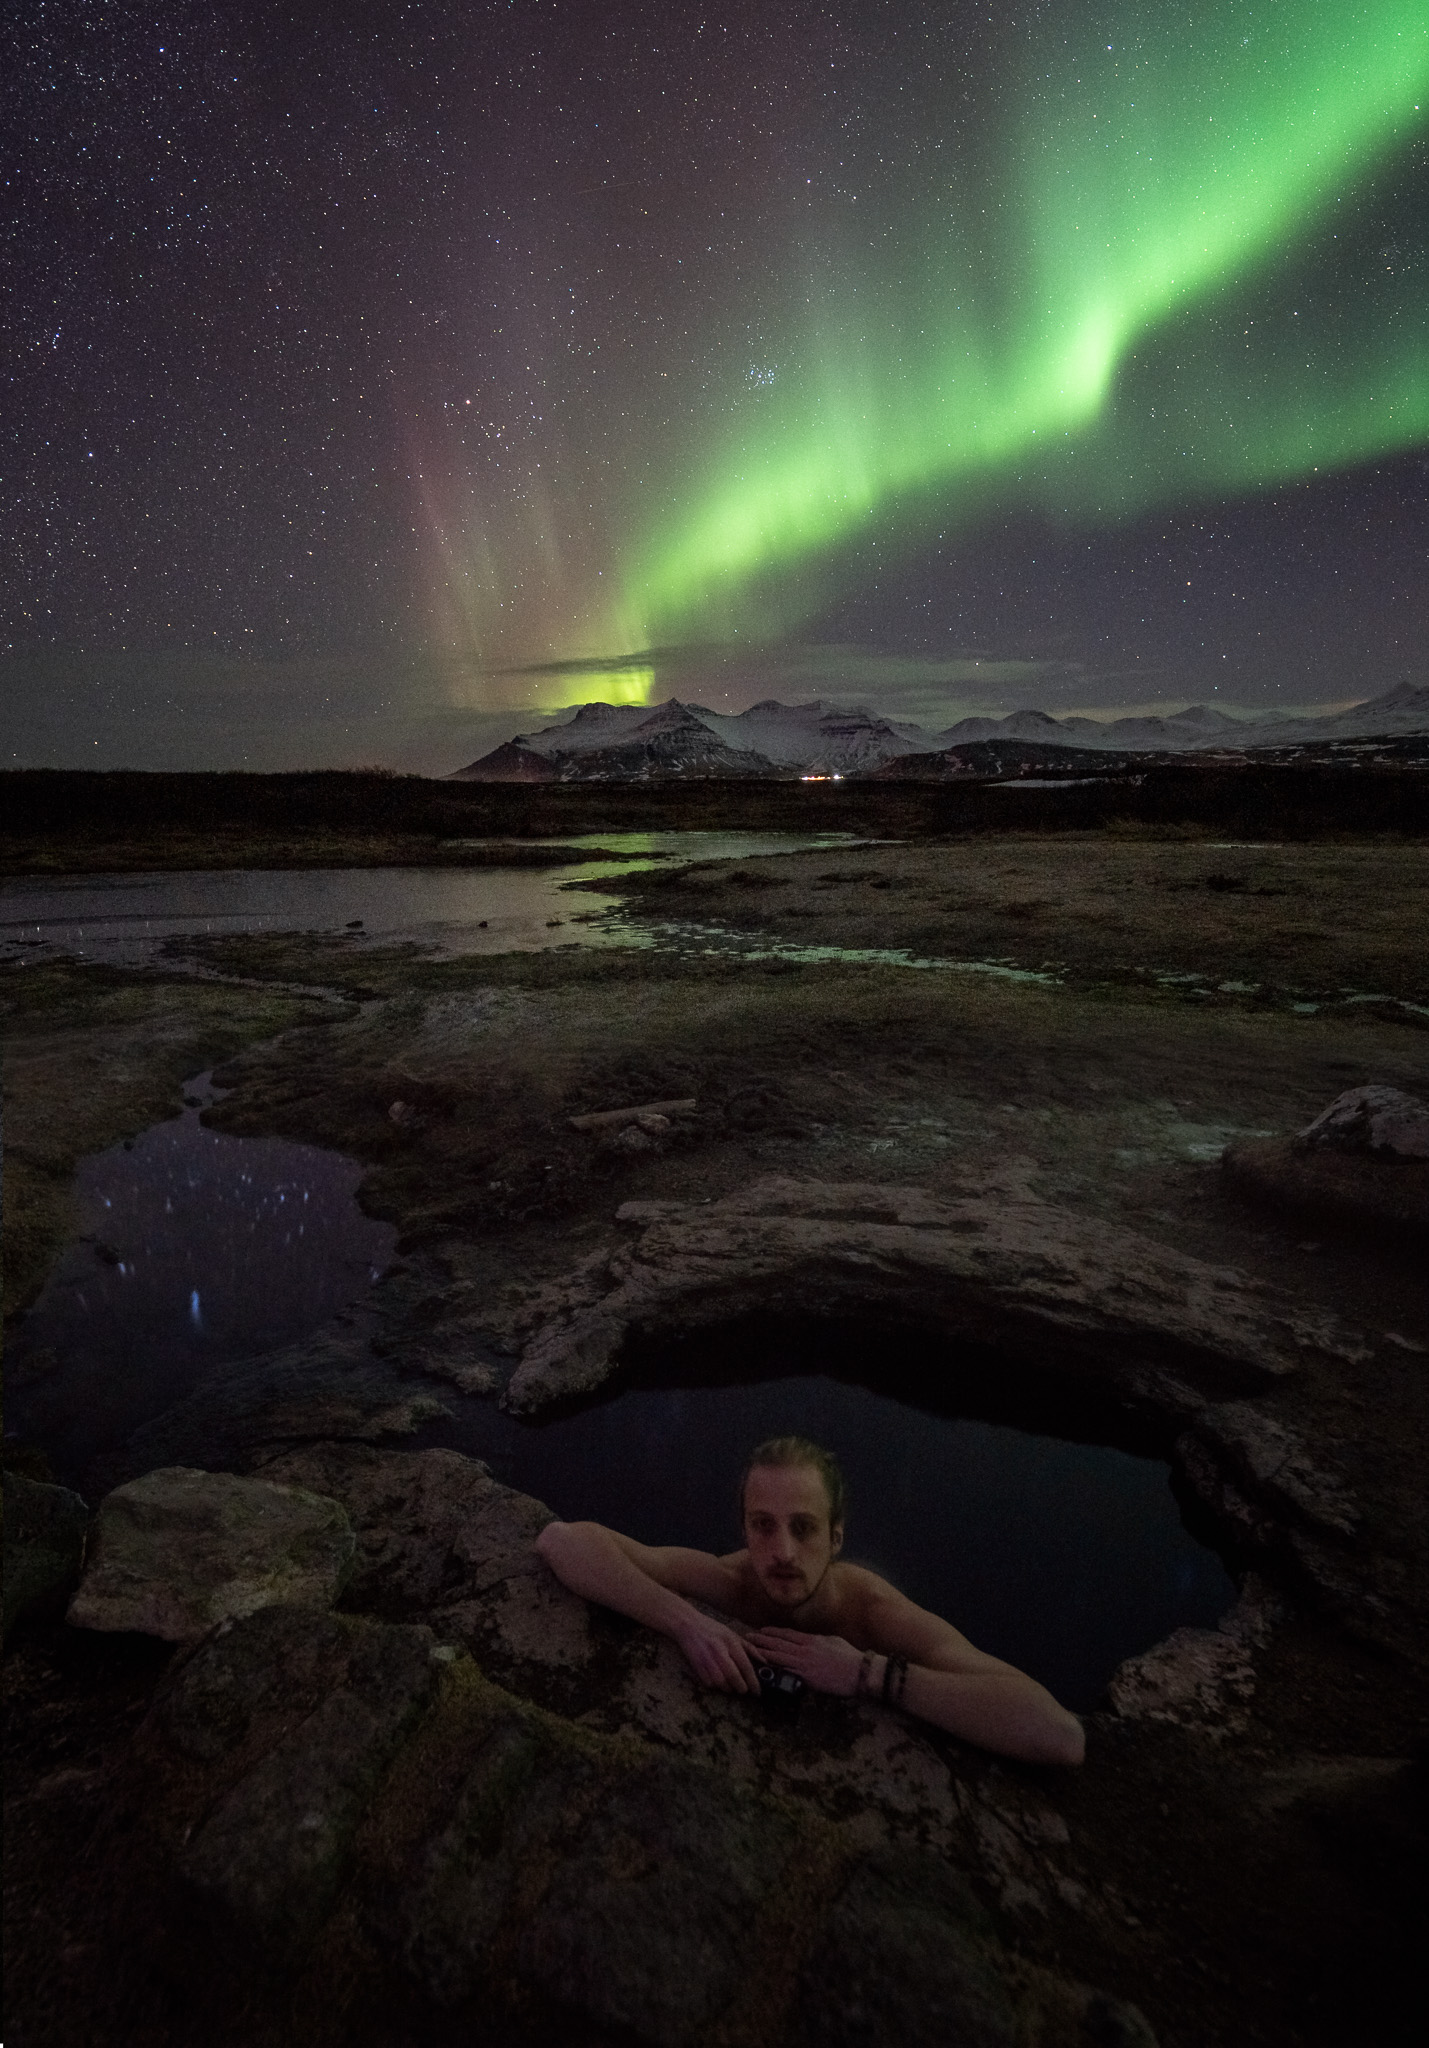 iceland-hot-spring-aurora-northern-lights